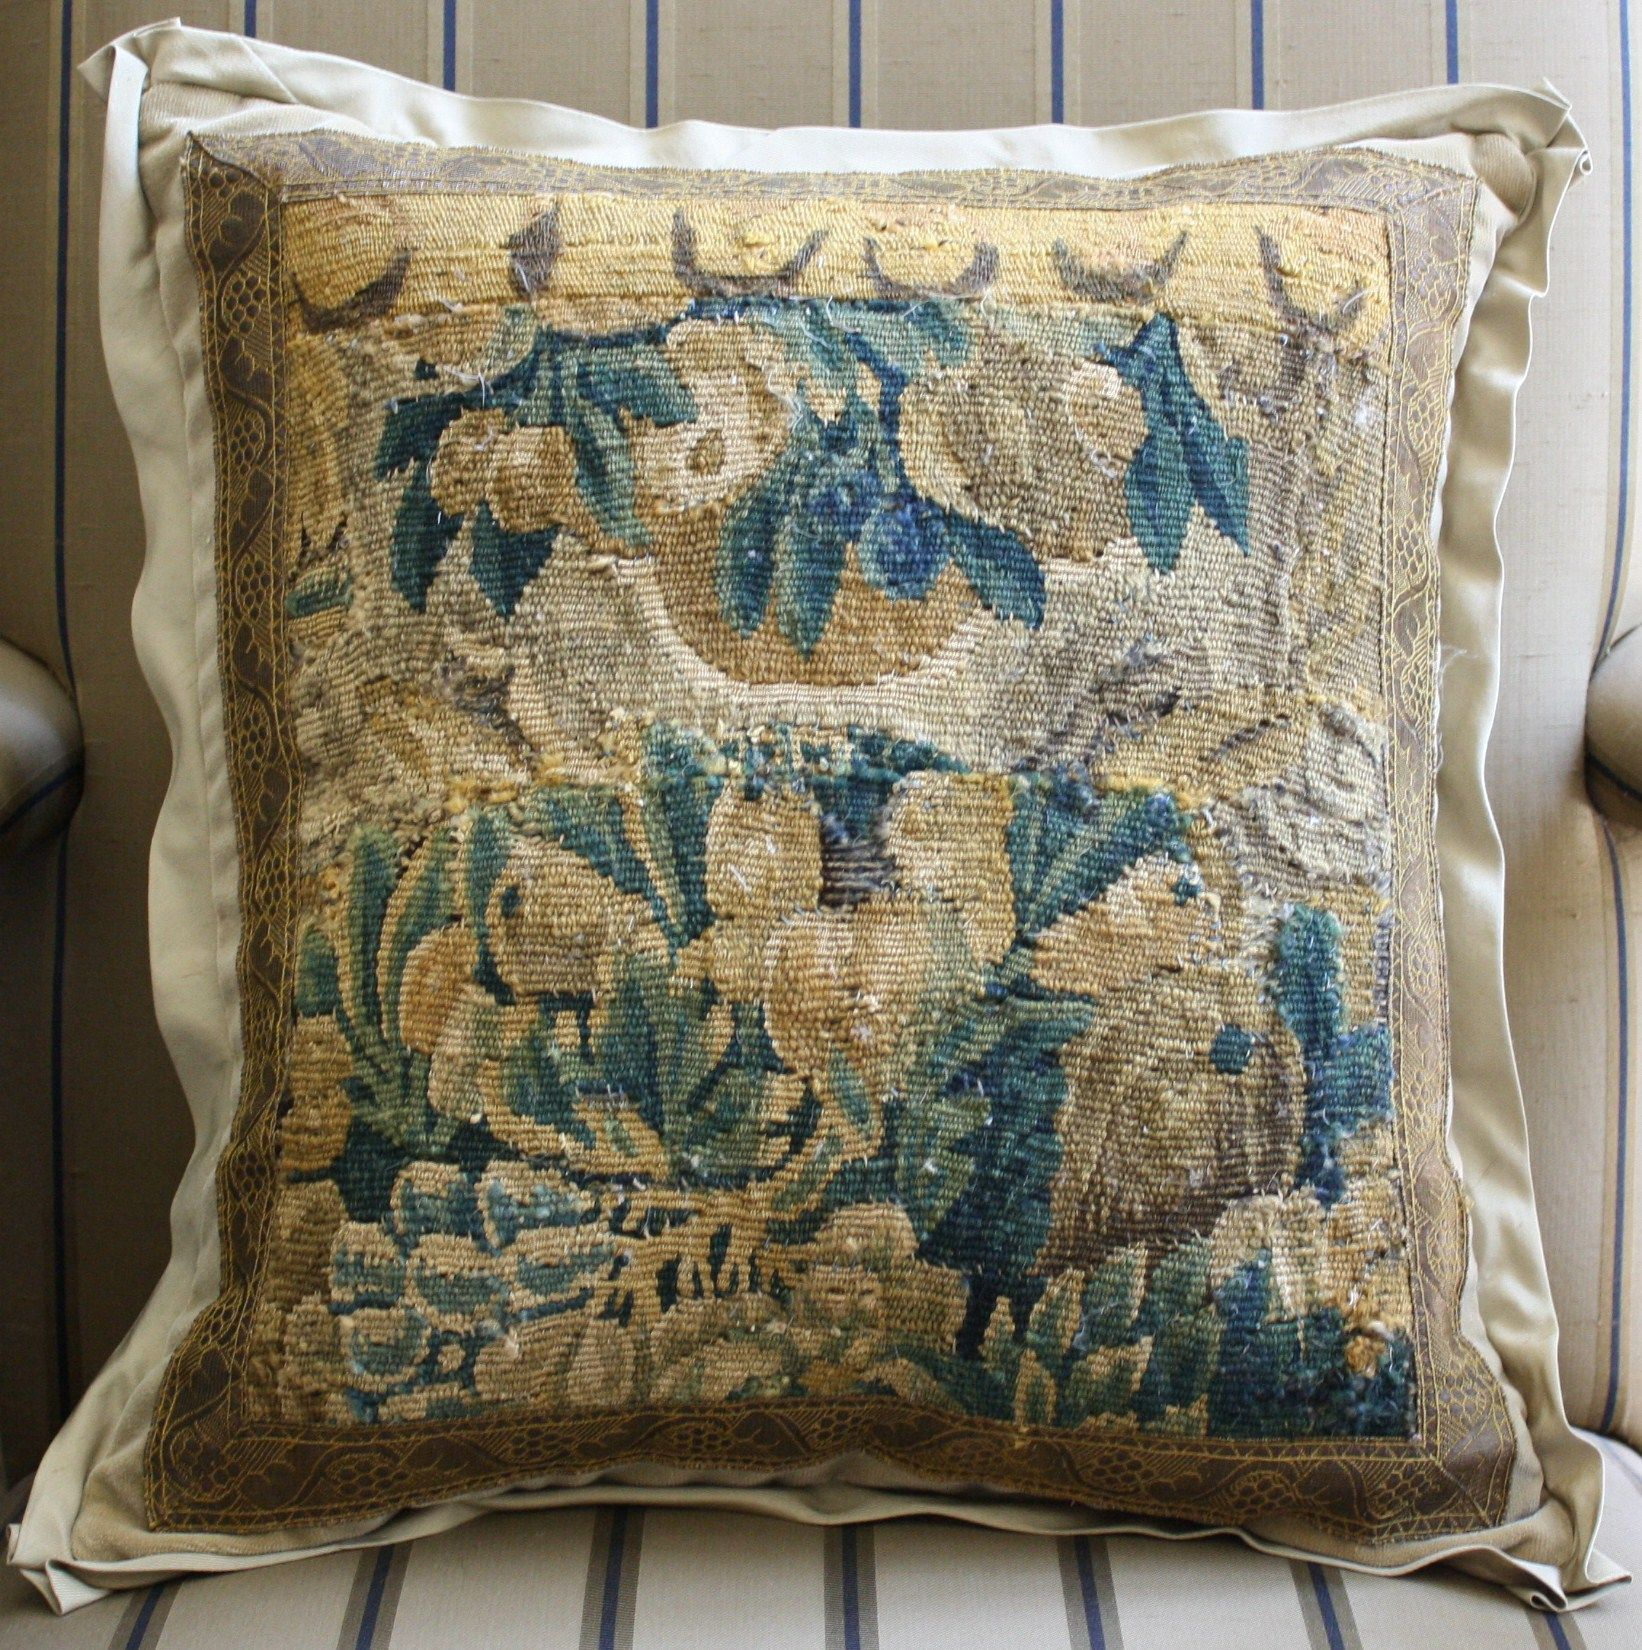 18th C Flemish Tapestry Pillow By E Alexander Designs E